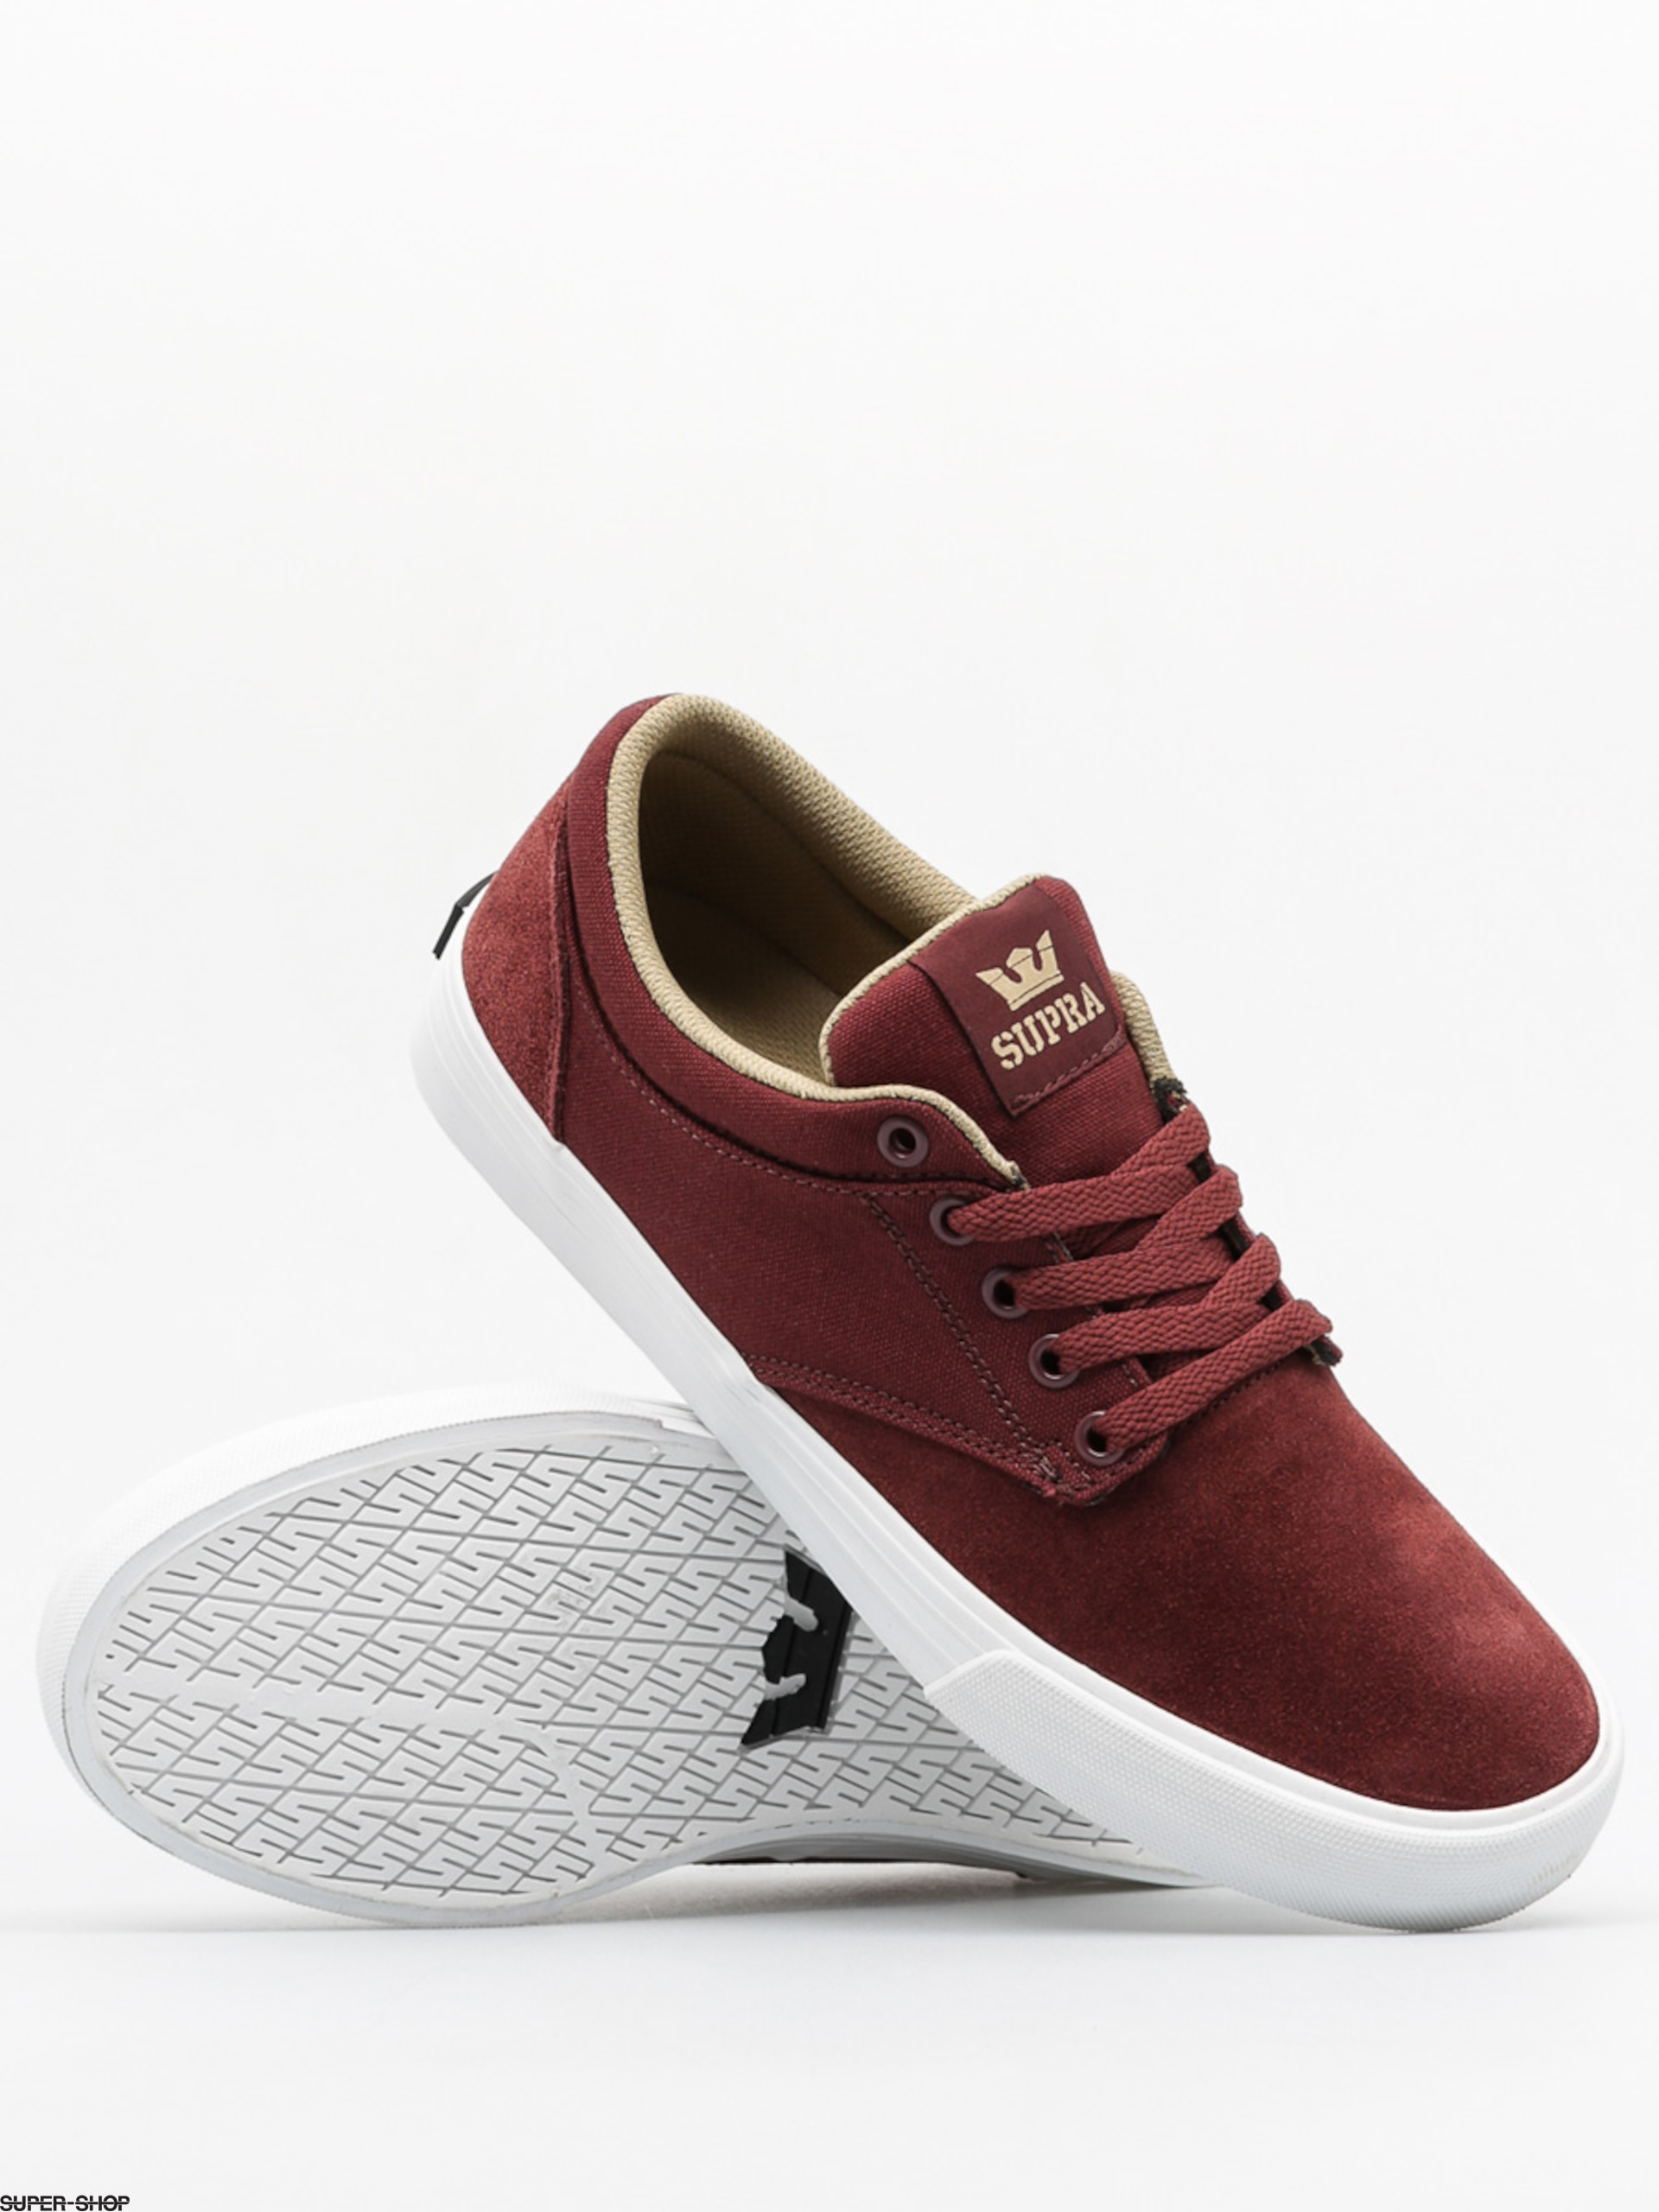 Supra Shoes Chino (burgundy khaki white) ac7d38c29